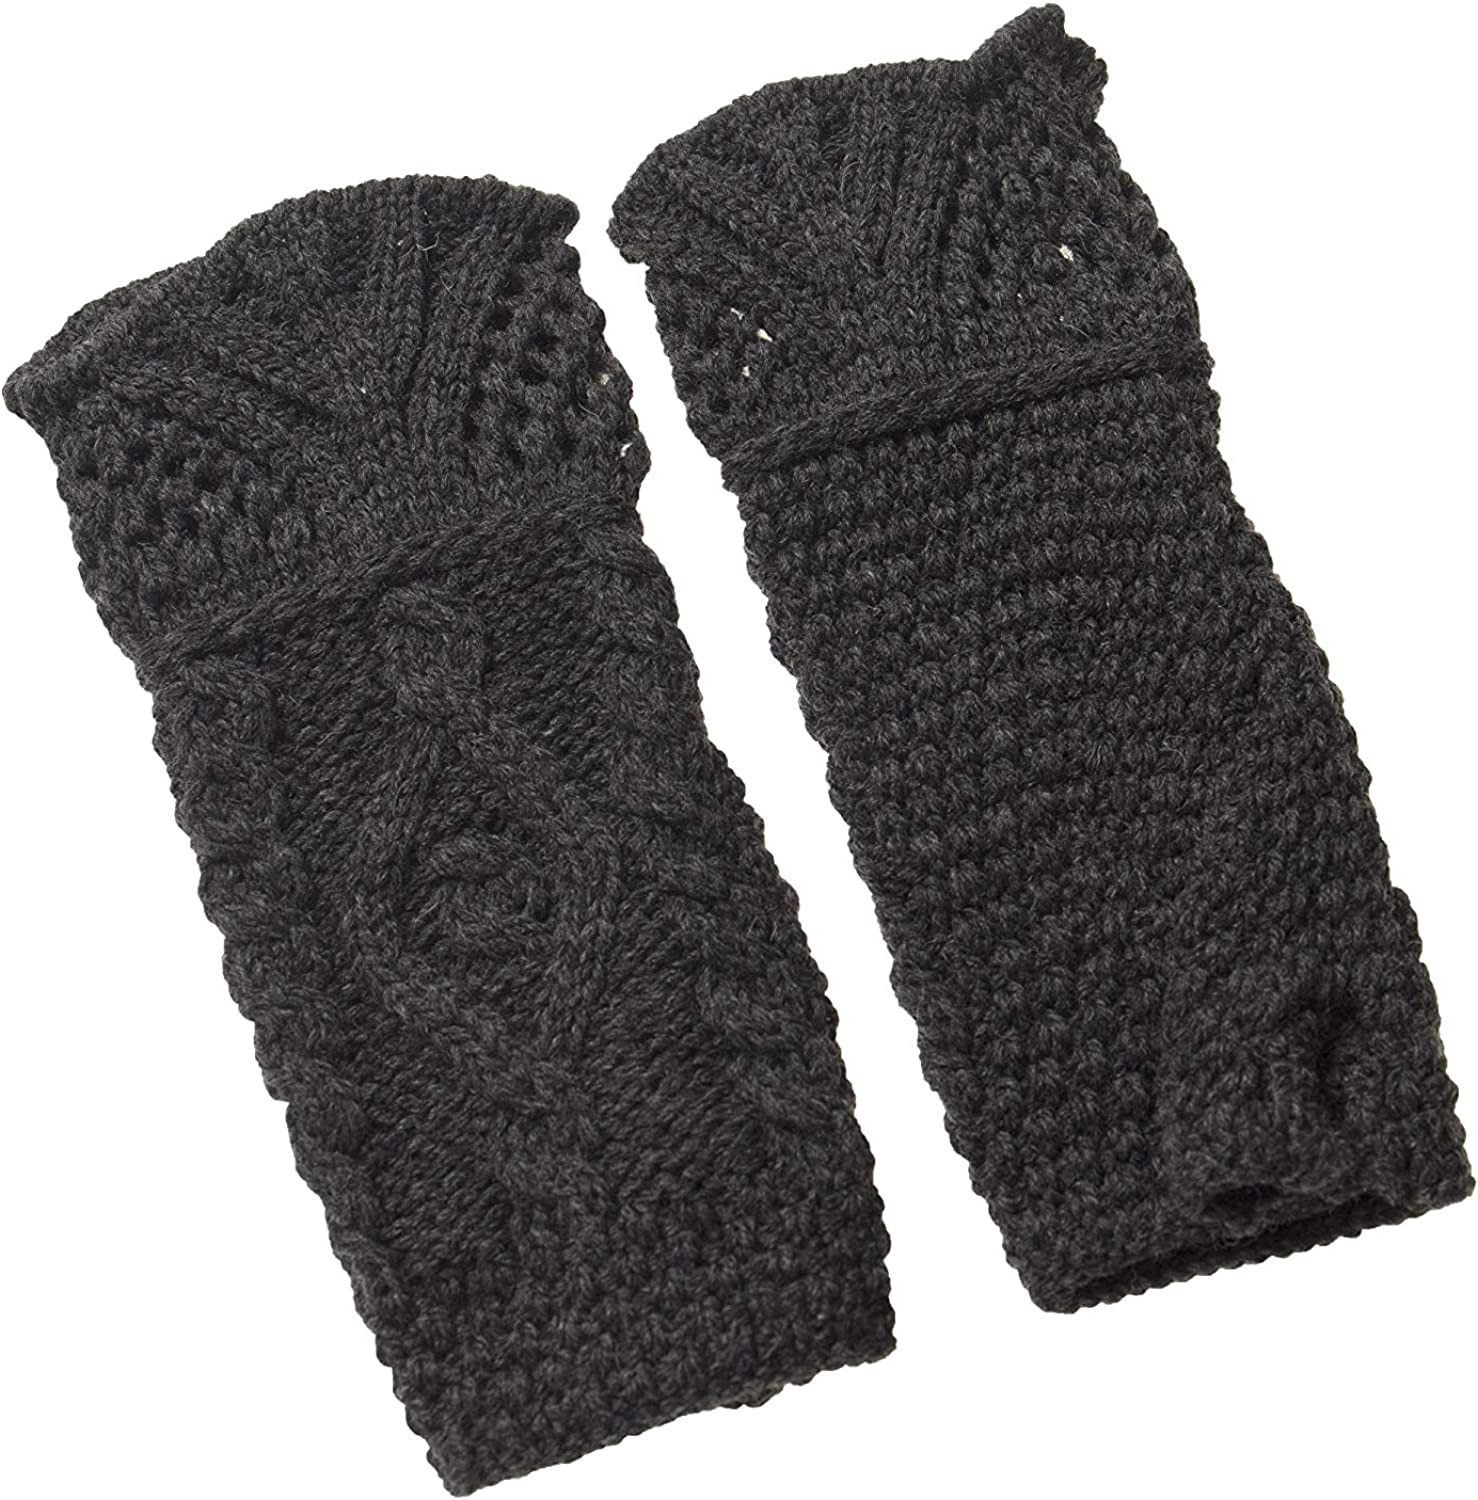 Aran Crafts Fingerless Merino Mittens One Size Charcoal (X4342CHAR)